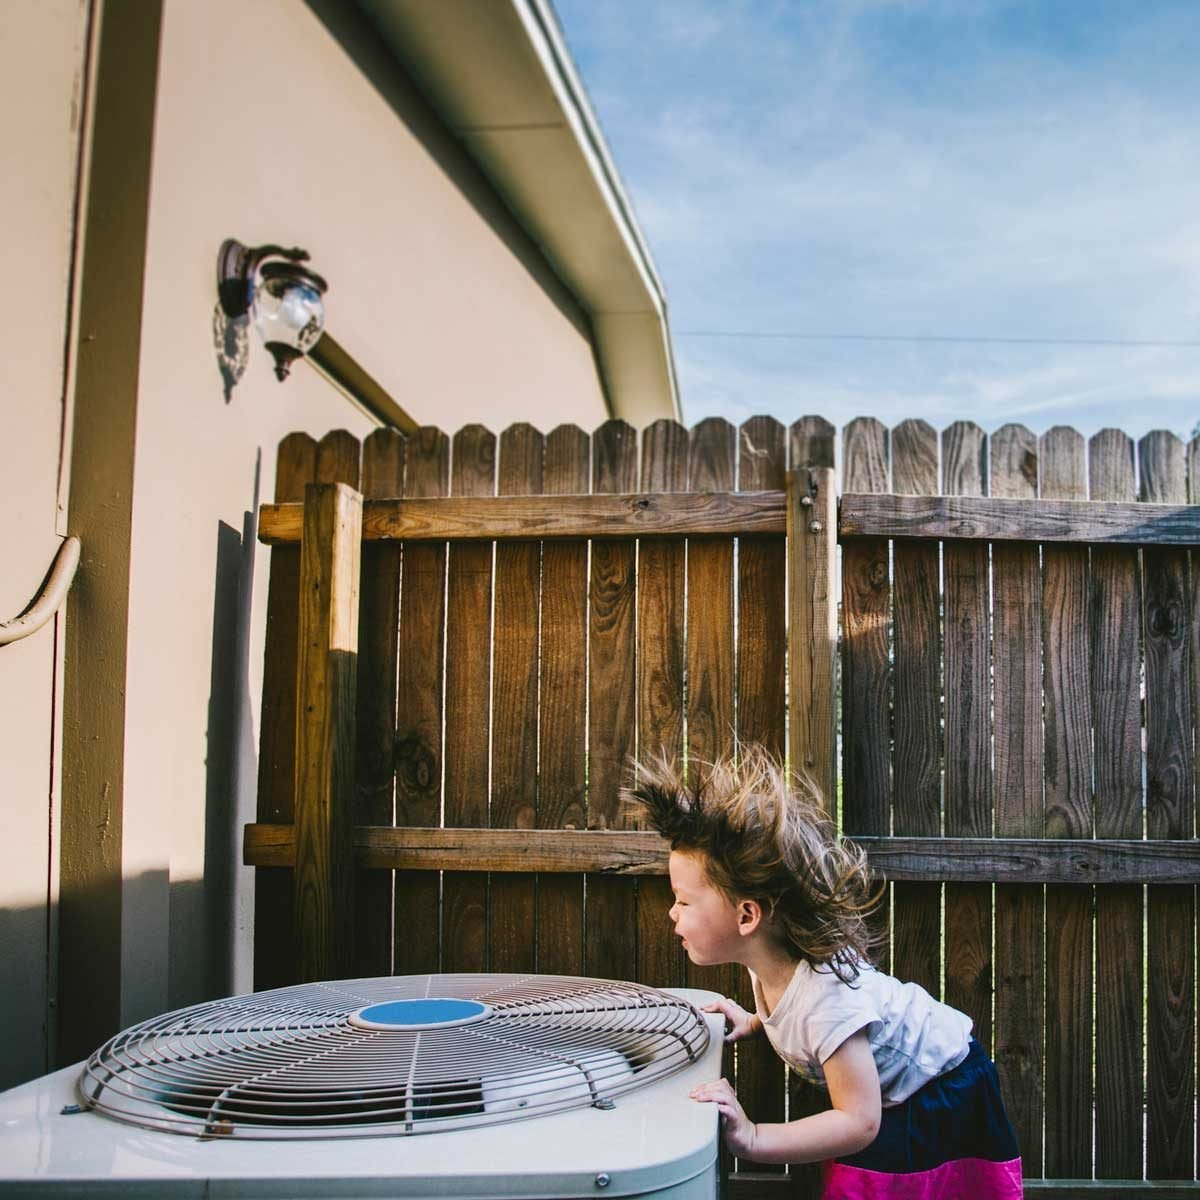 Home Cooling Tips To Save Money and Stay Comfortable All Summer